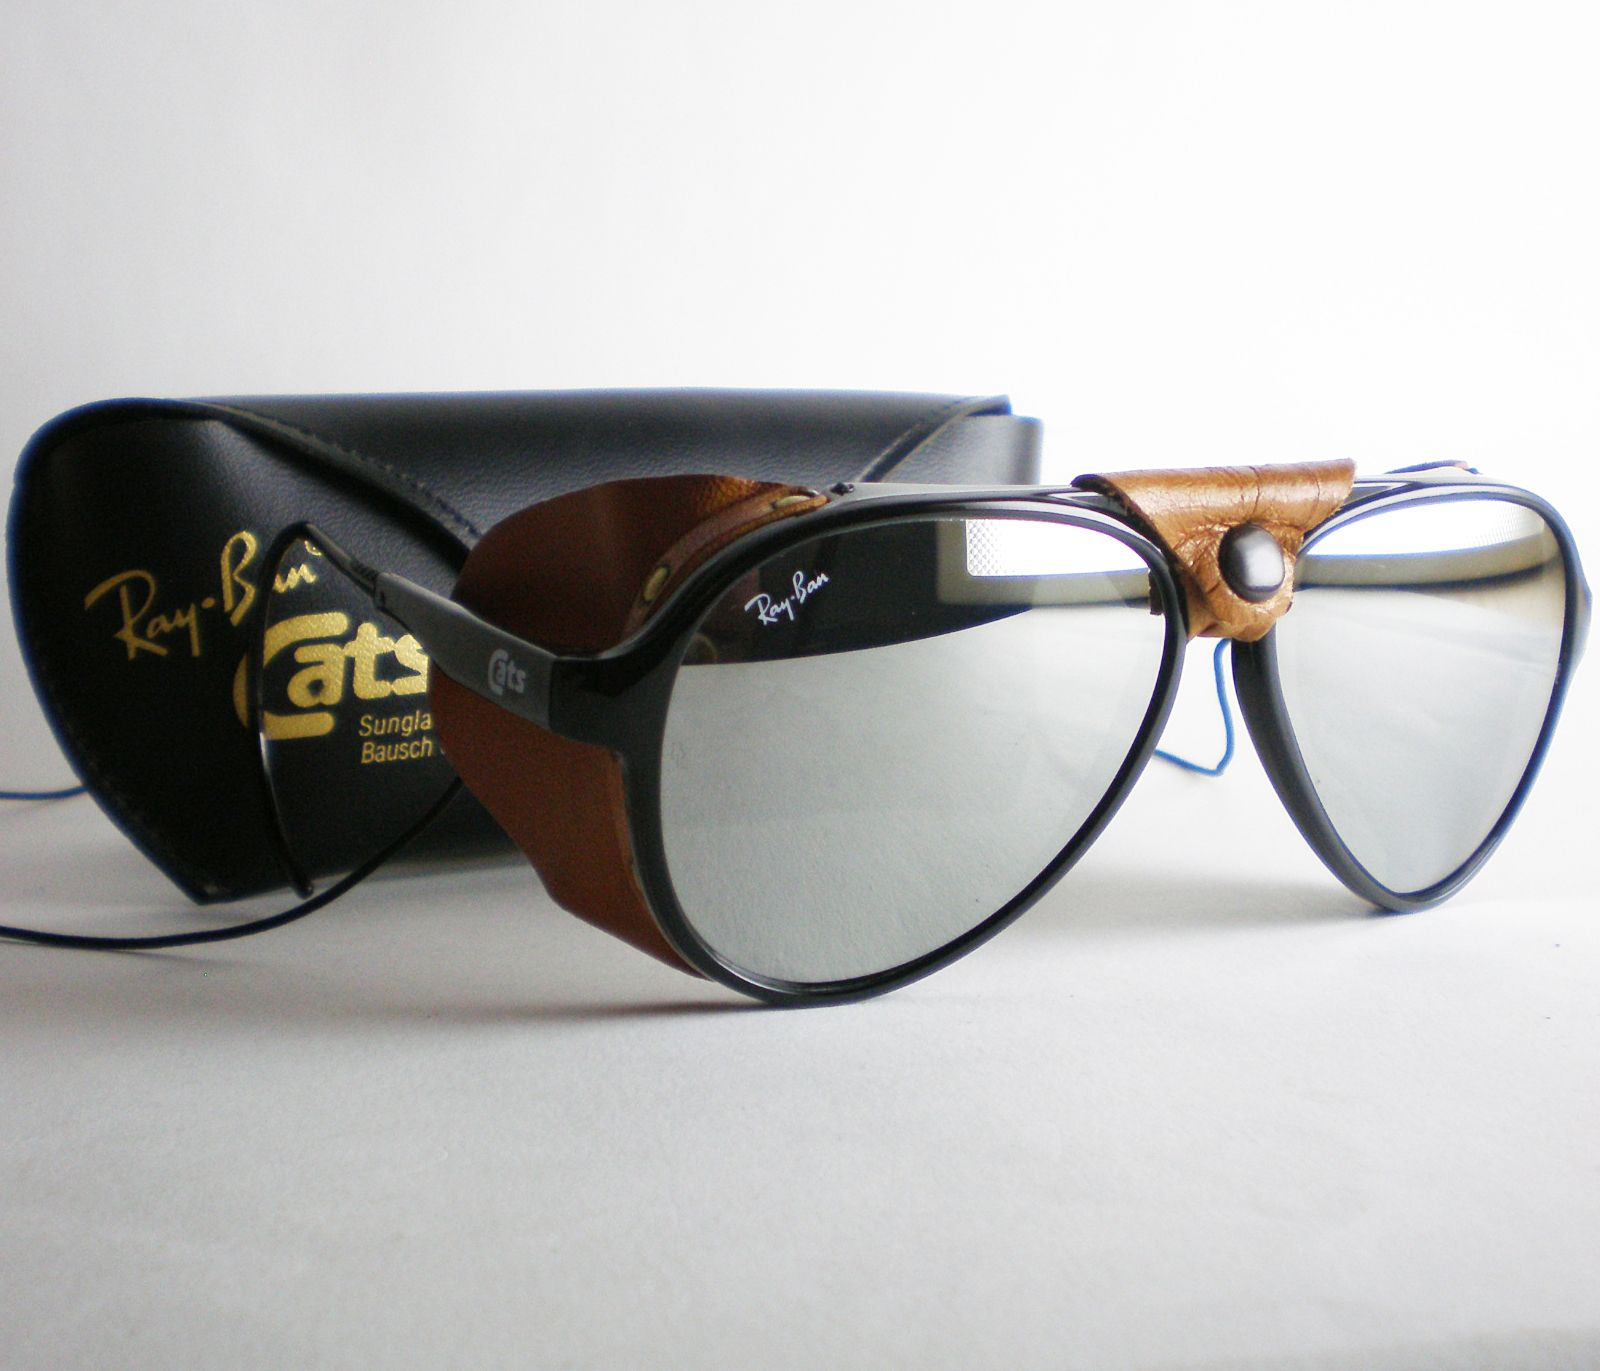 810ef3d0dd5f8 Vintage Ray Ban CATS 8000 MIRRORED Sunglasses aviator side shield leathers  black   eBay